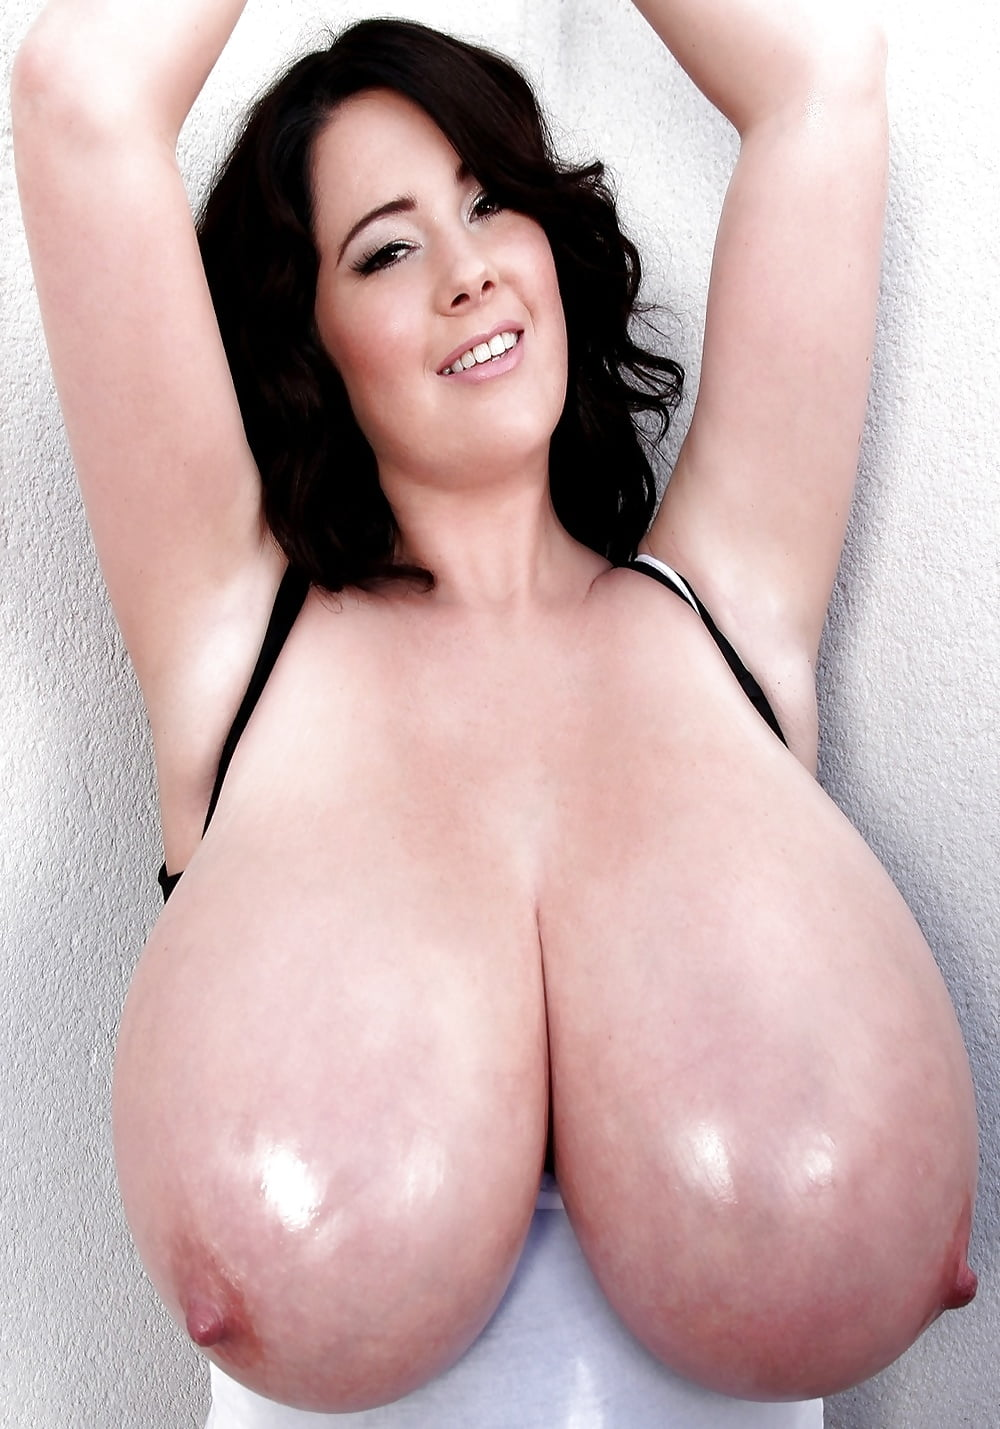 Ghirl babe snapporn solo girl talia shepard rubs lotion into sleek legs and giant boobs